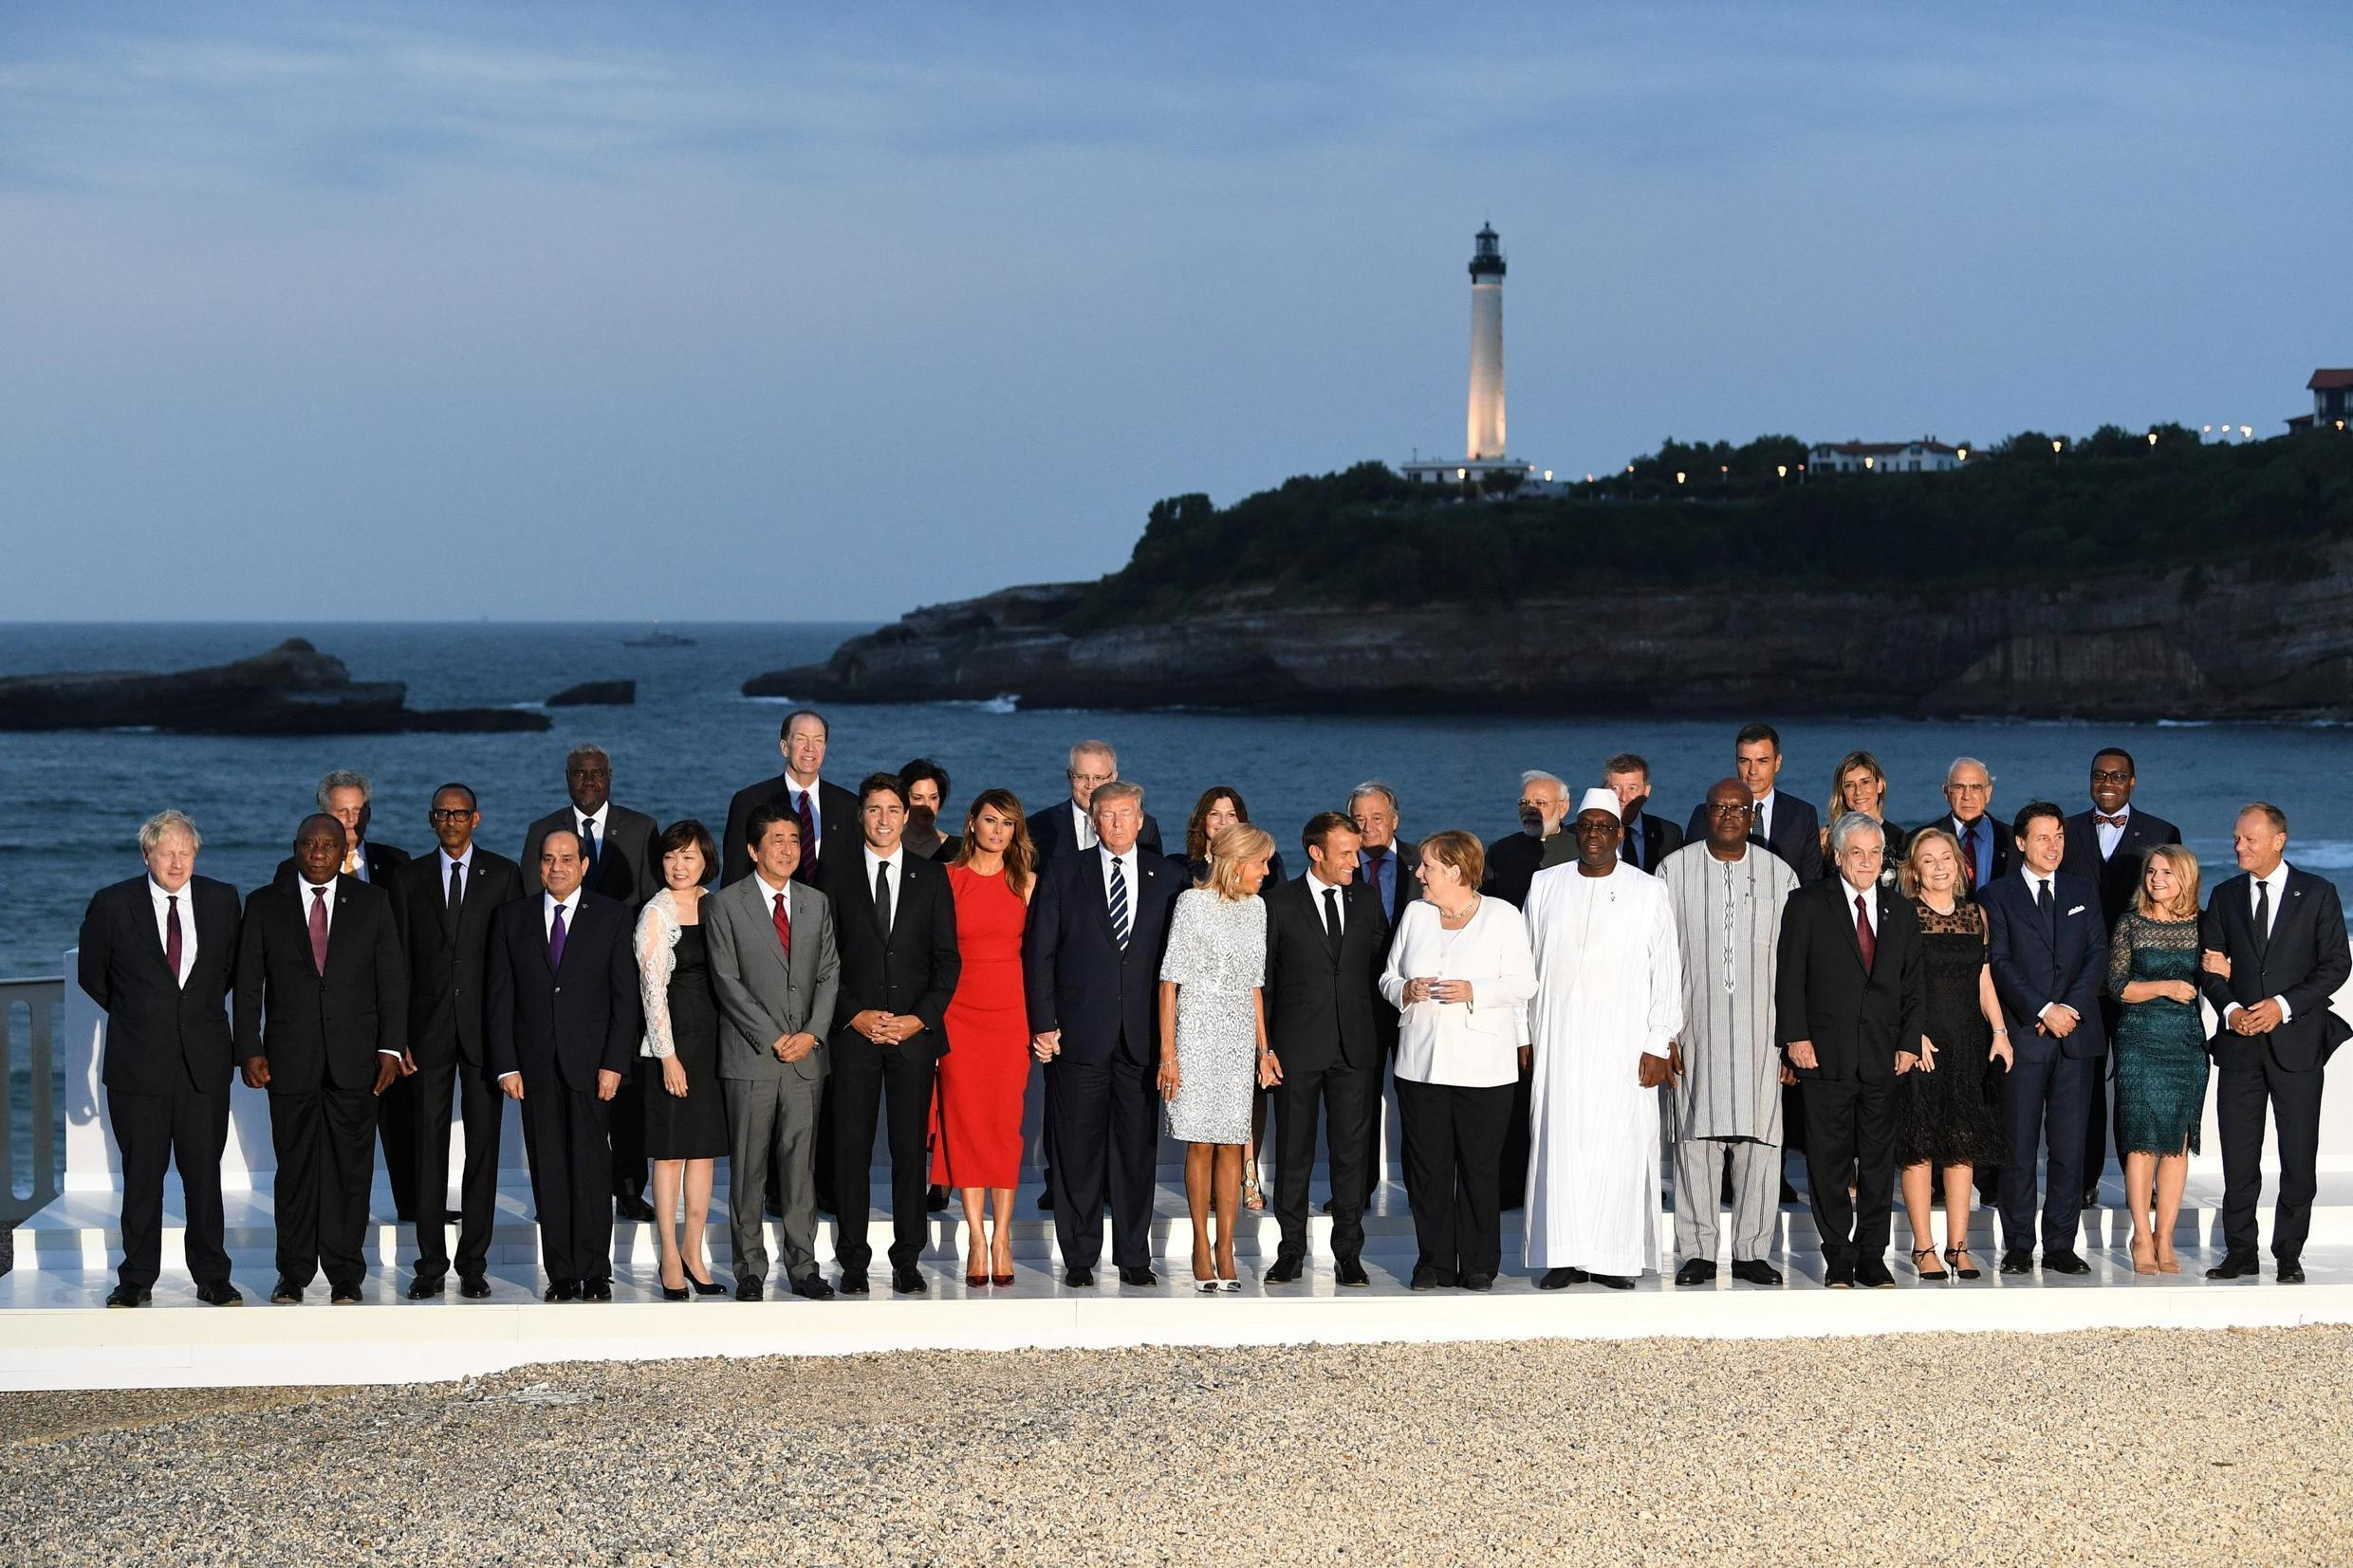 A holiday snap with a difference: the G7 family photo, Biarritz, 25 August 2019.